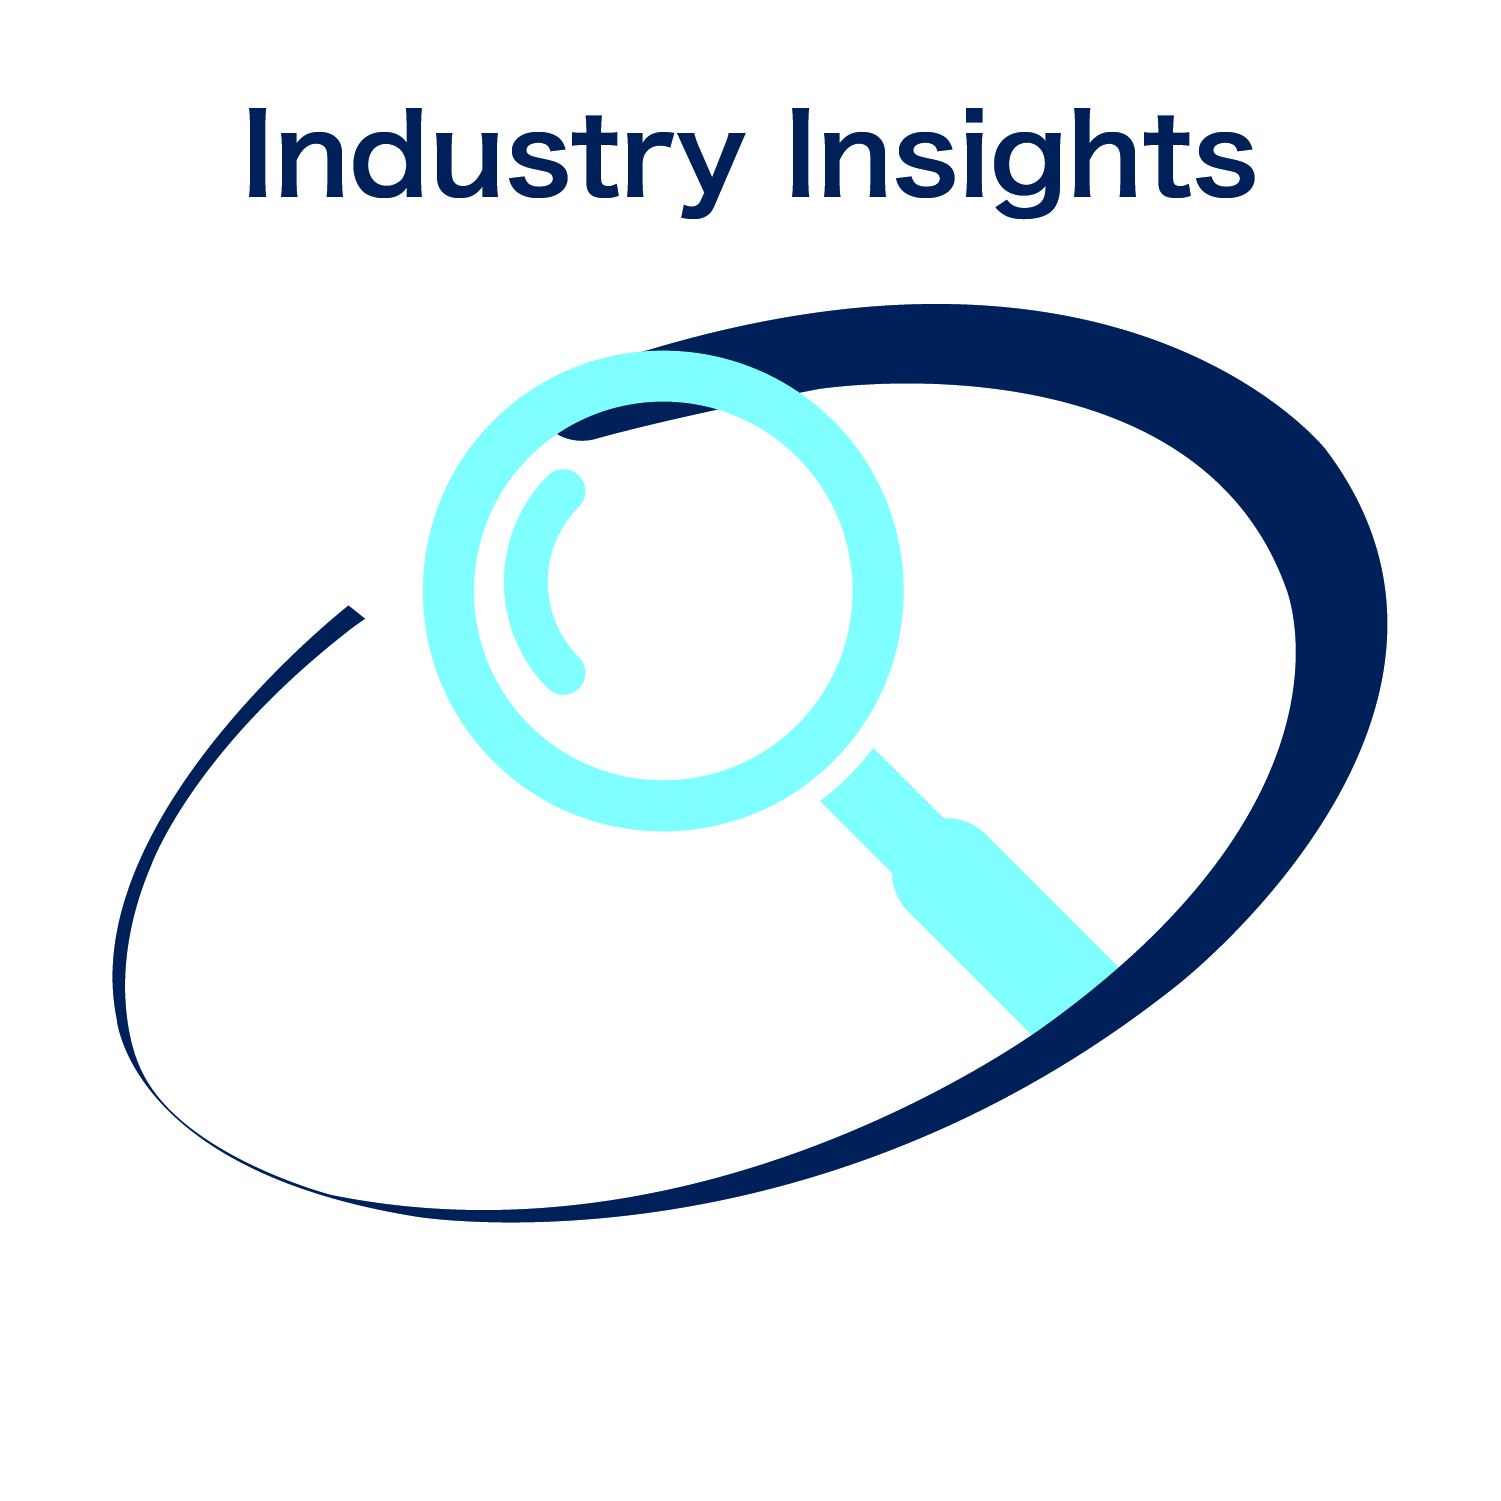 Review industry insights and industry related news.